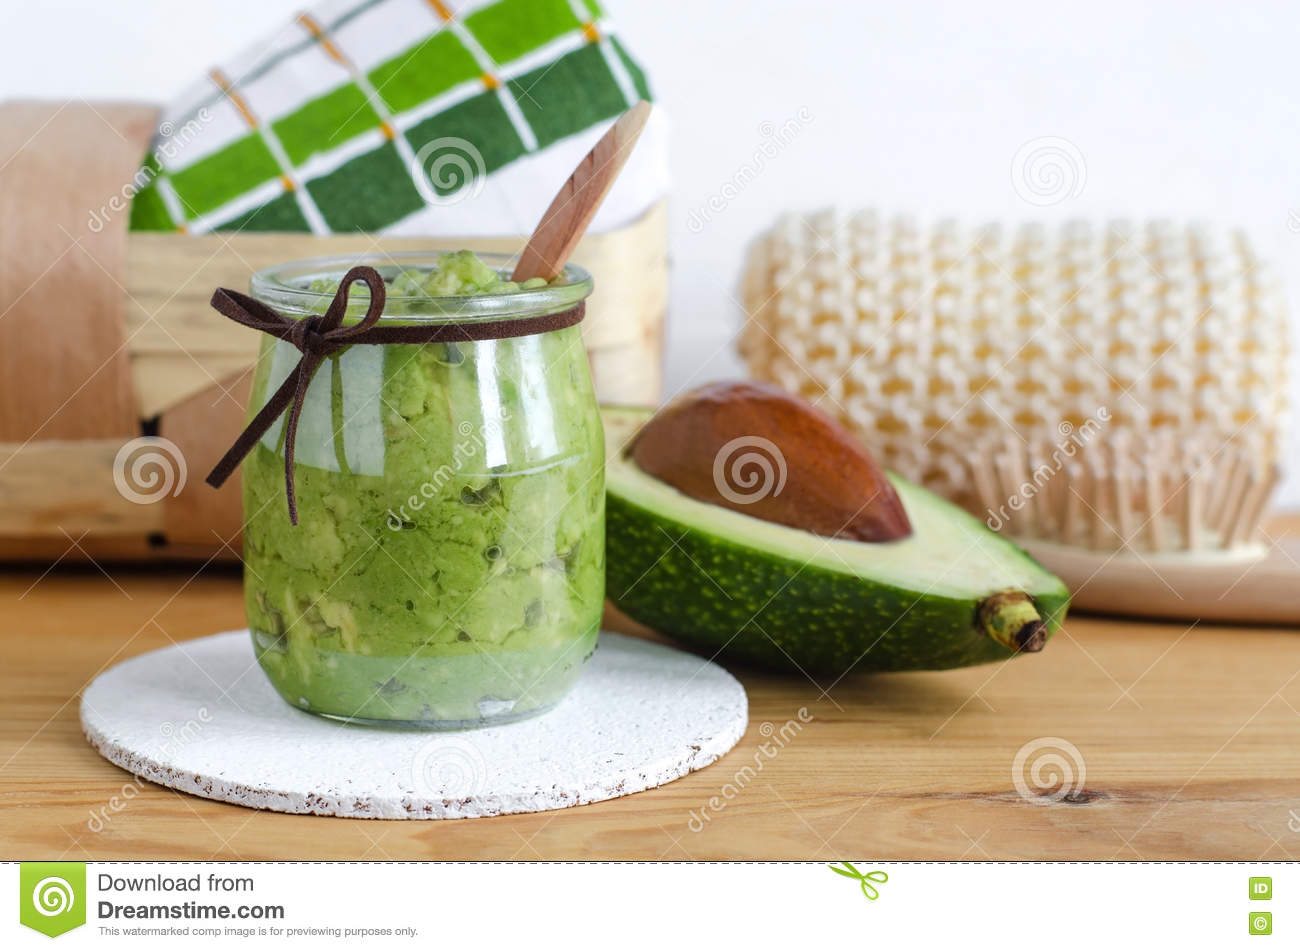 Homemade avocado mask. Prepared from mashed avocado and olive oil. Diy cosmetics.